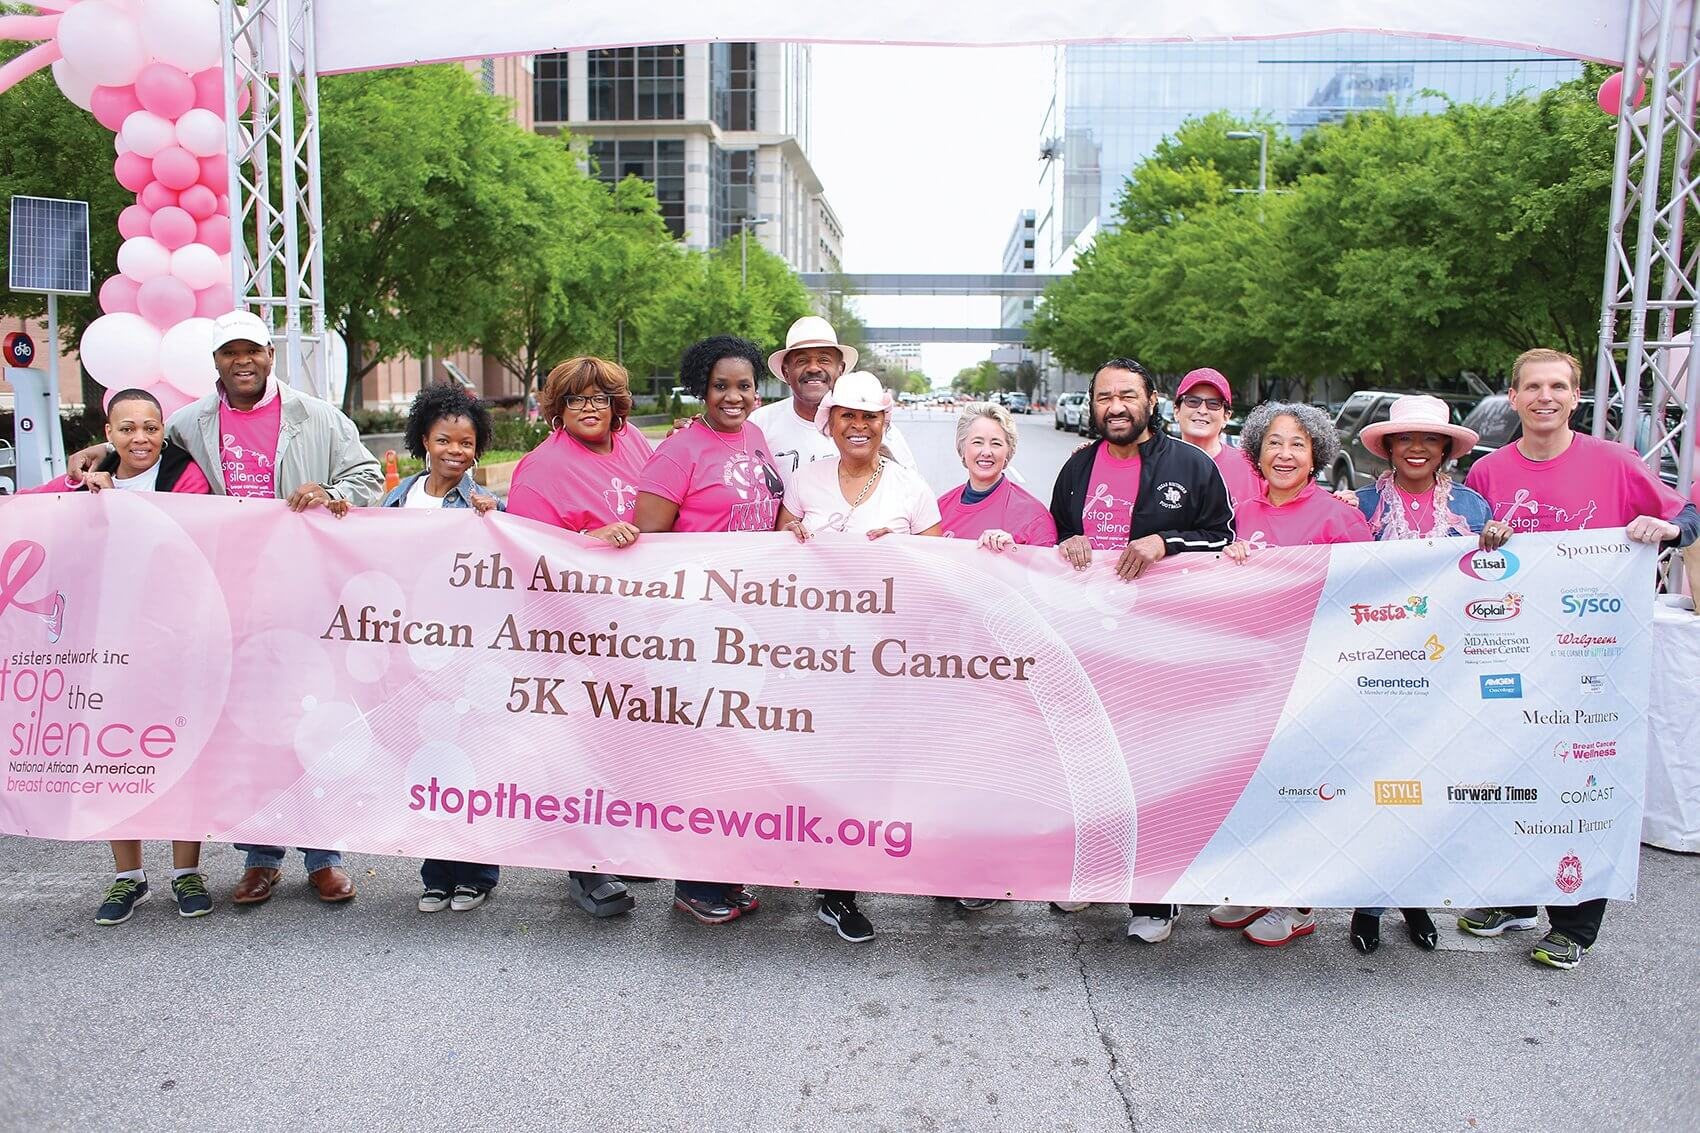 Jackson with Houston Mayor Annise Parker and a group of supporters at the 5th Annual Stop the Silence walk last year. (Credit: Sisters Network Inc.)